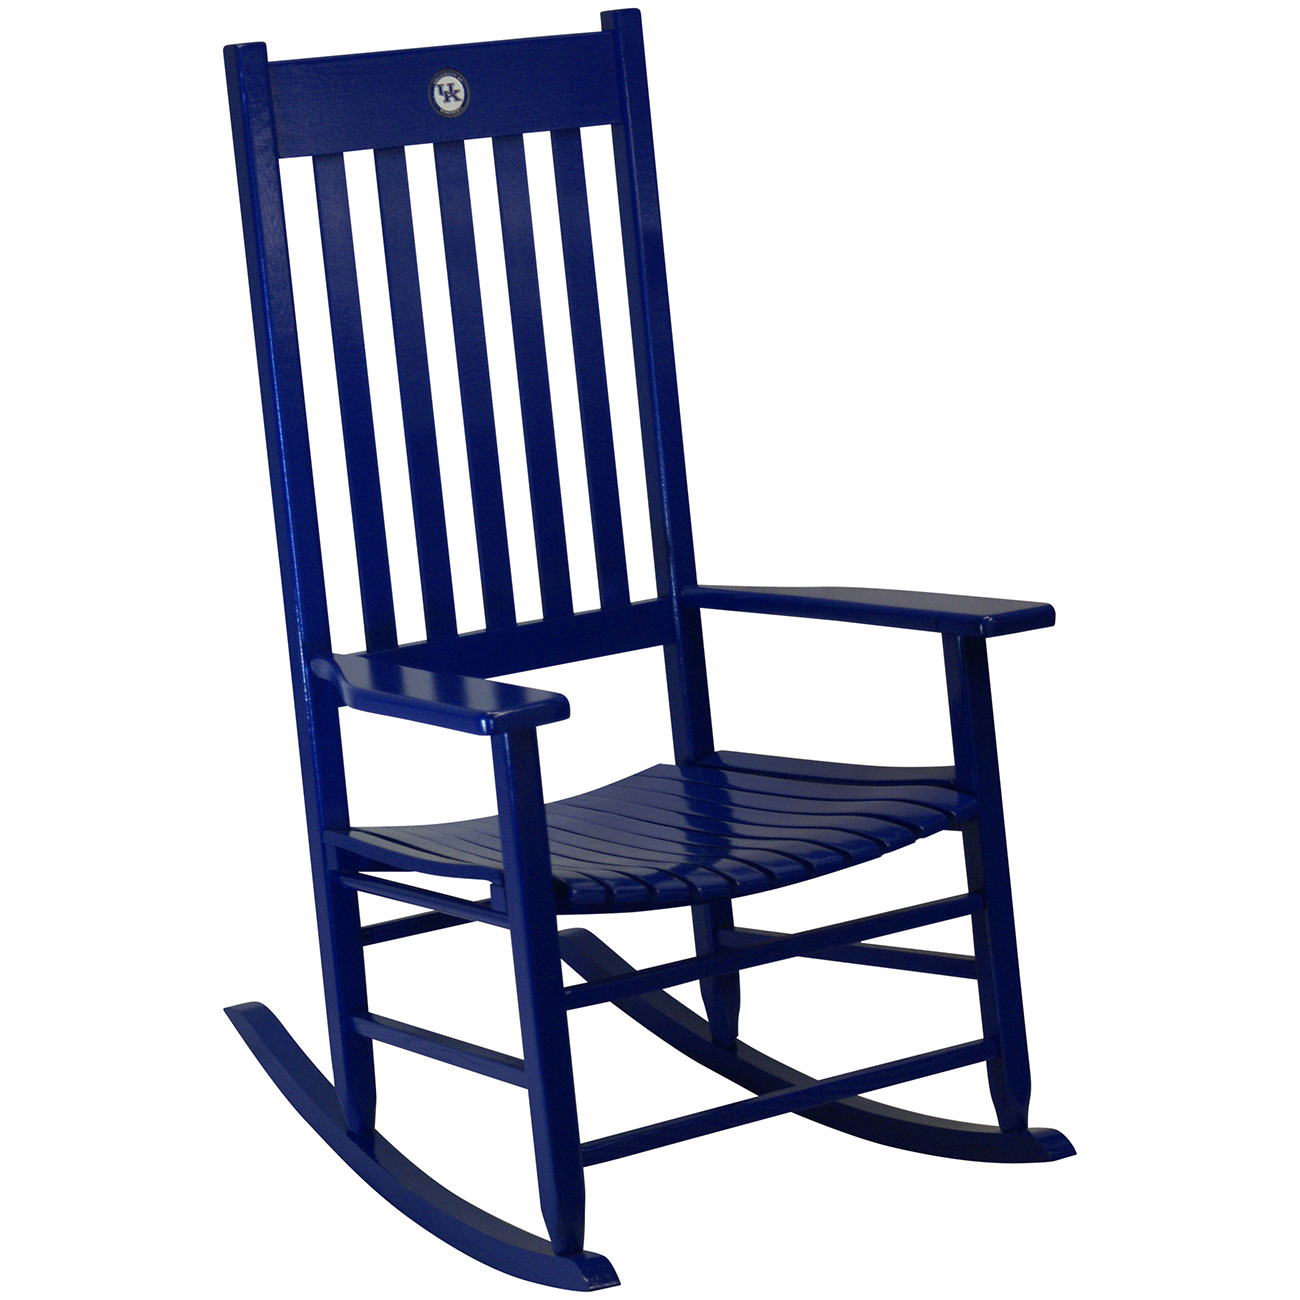 Phenomenal Team Color Rocking Chair Kentucky Gmtry Best Dining Table And Chair Ideas Images Gmtryco